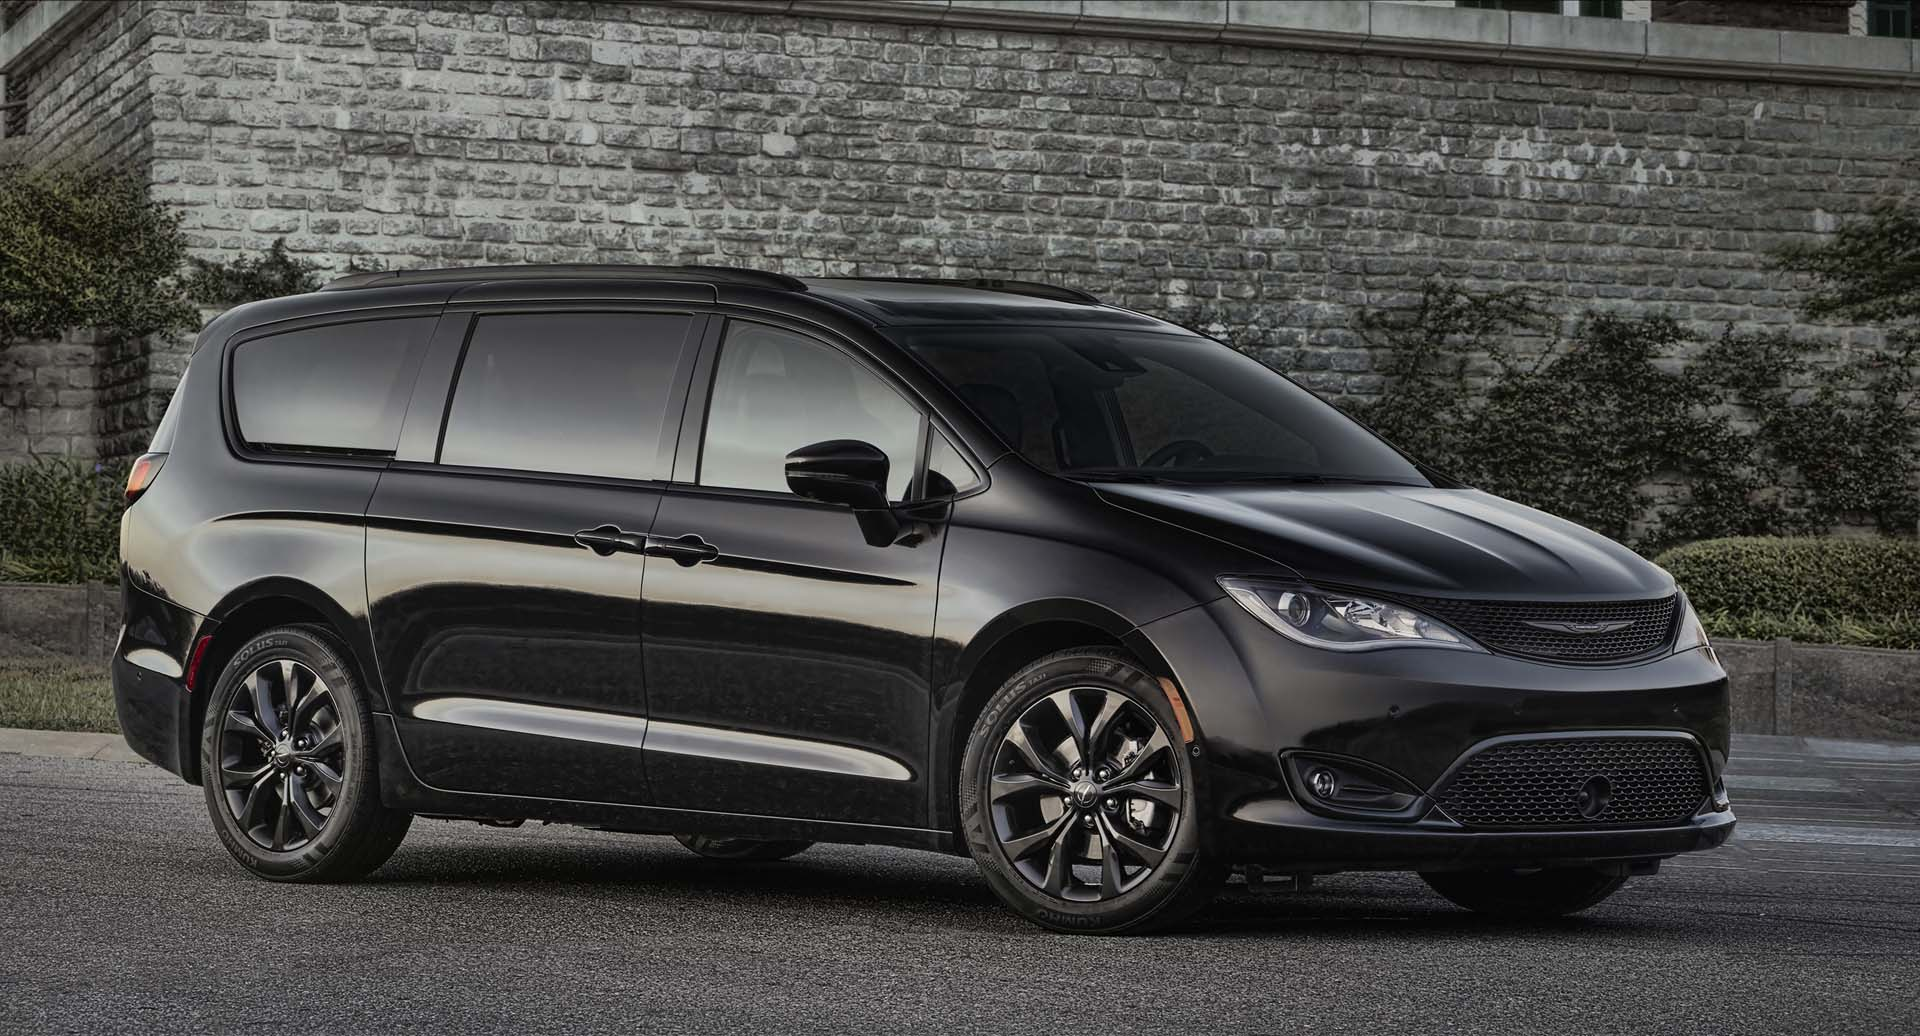 2019 Chrysler Pacifica Review Ratings Specs Prices And